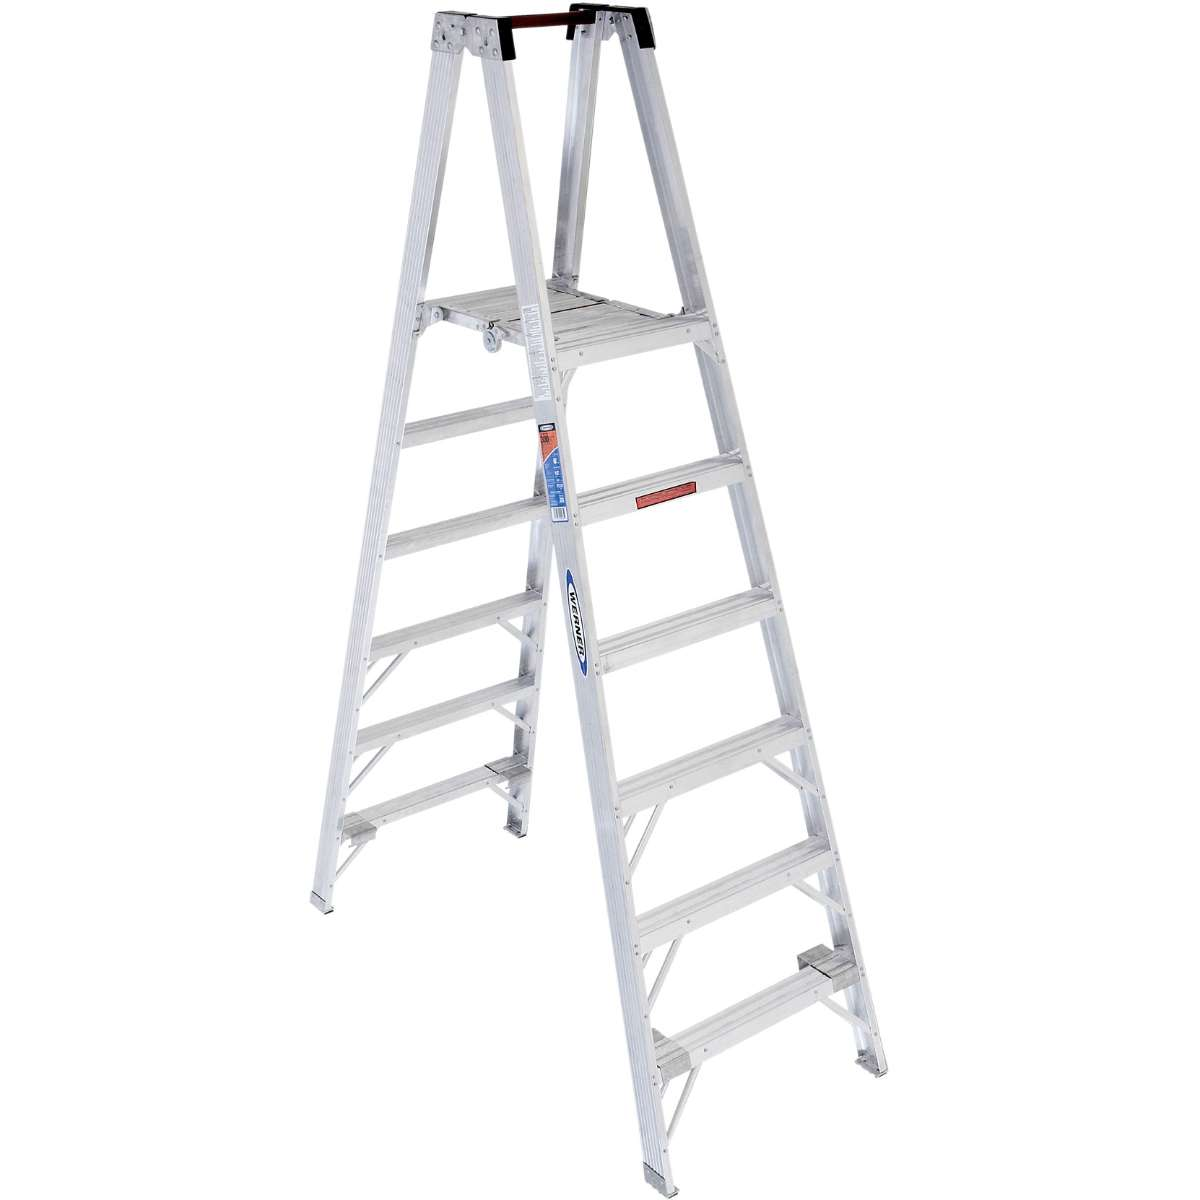 Aluminum Platform Step Ladder - 300 lb. Capacity (PT370 Series)